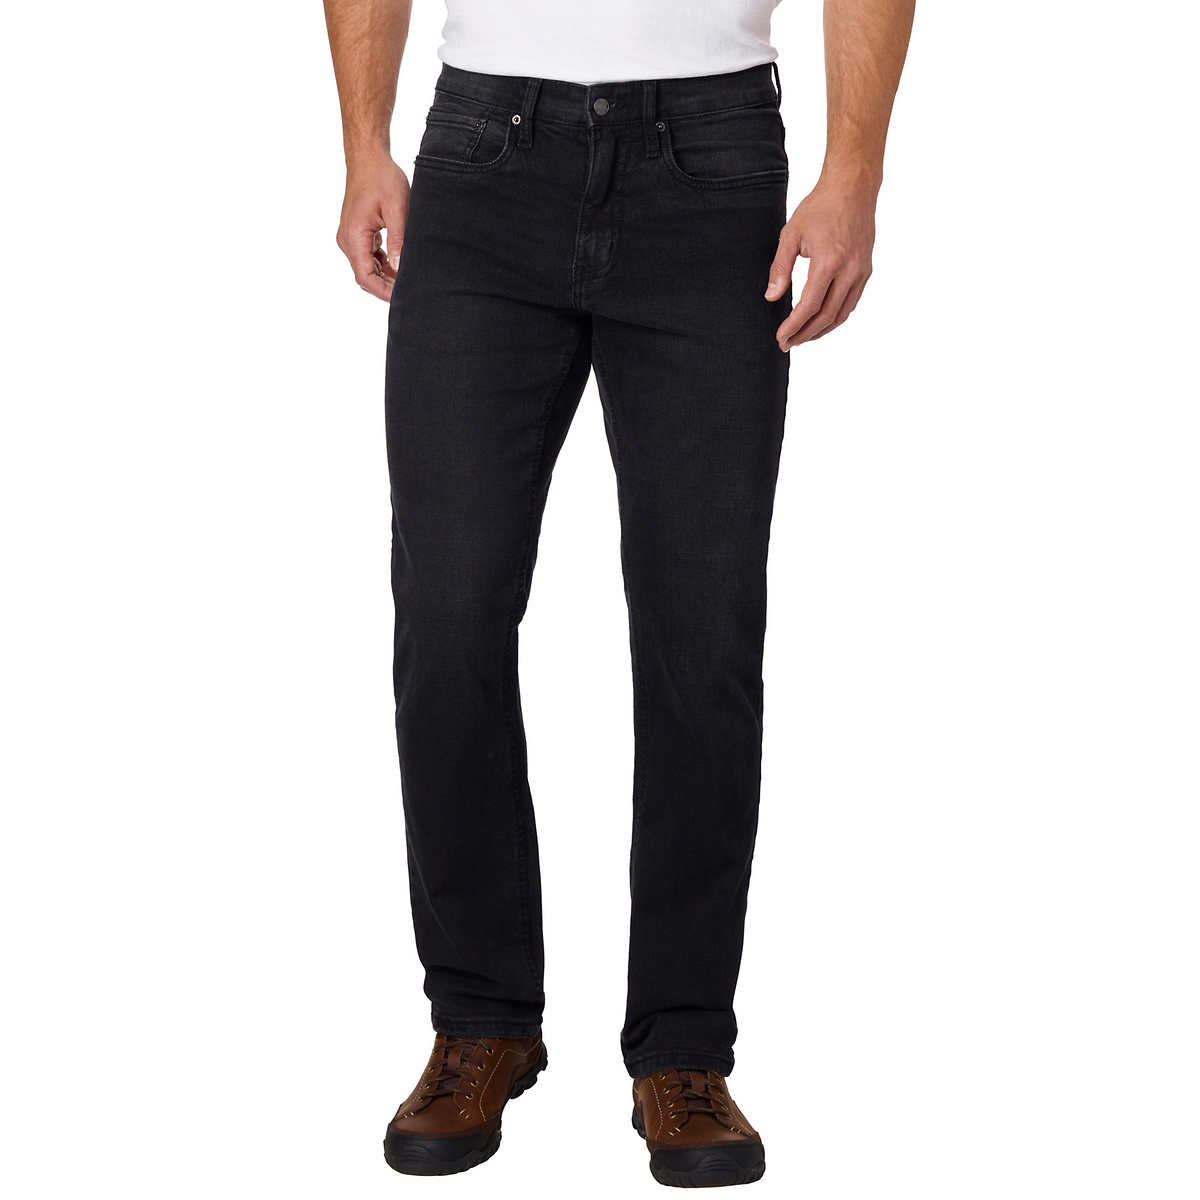 992f2435b75 Urban Star Men's Relaxed Fit Jean